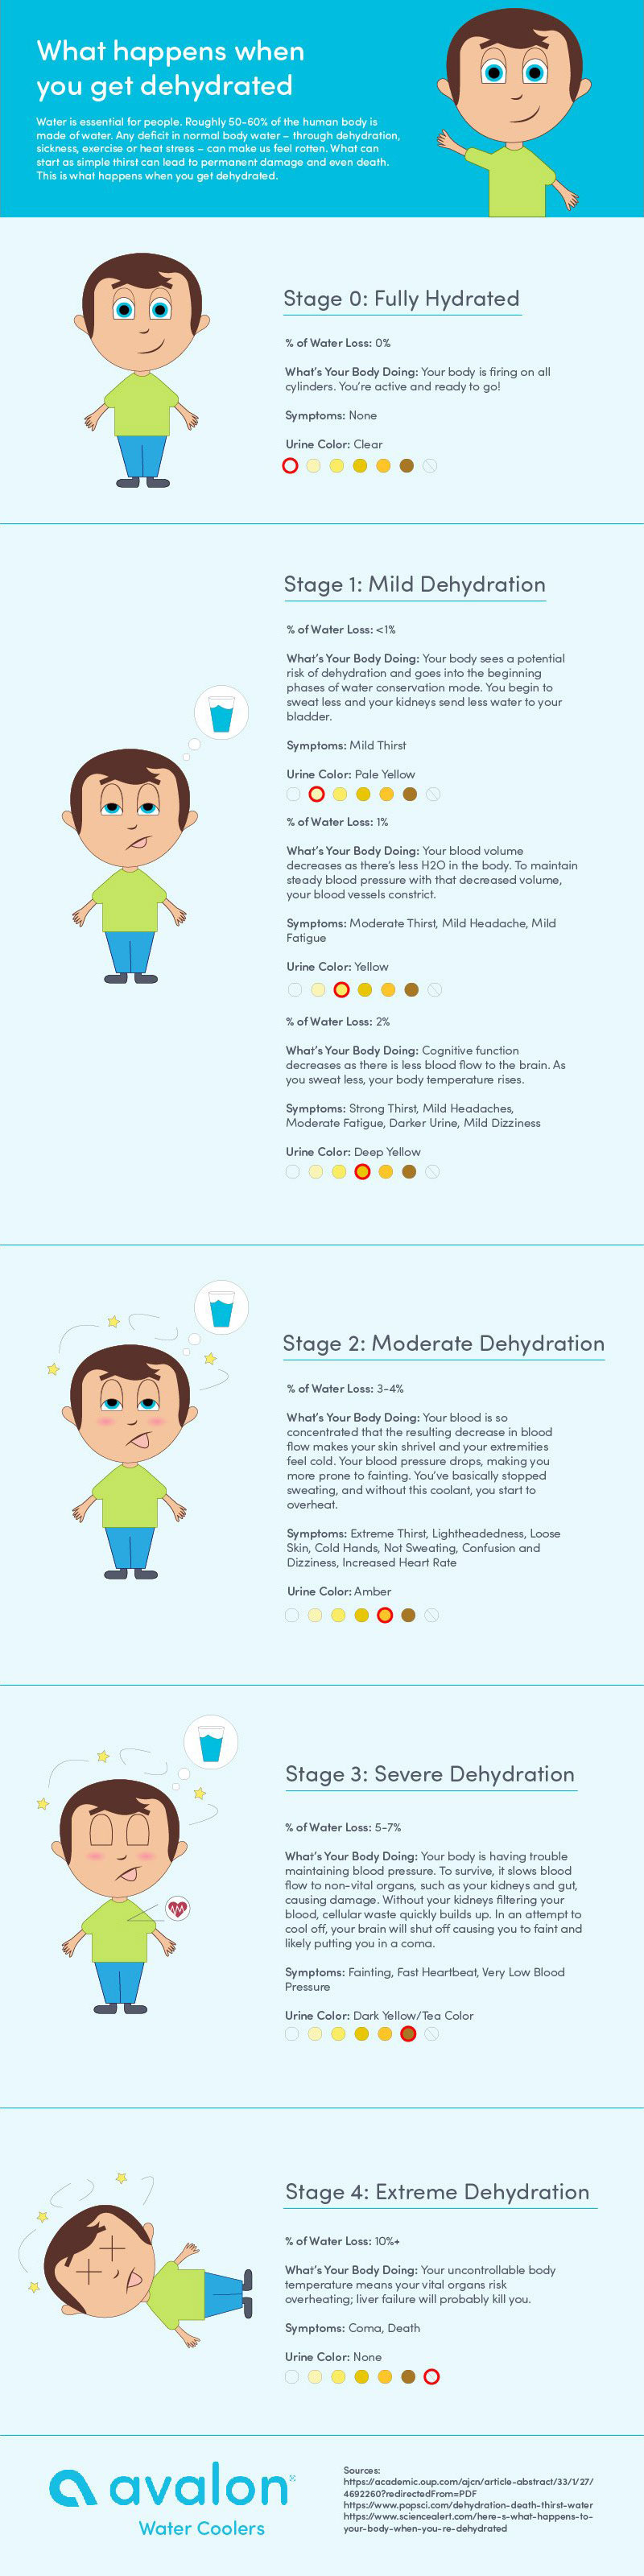 What happens when you get dehydrated?